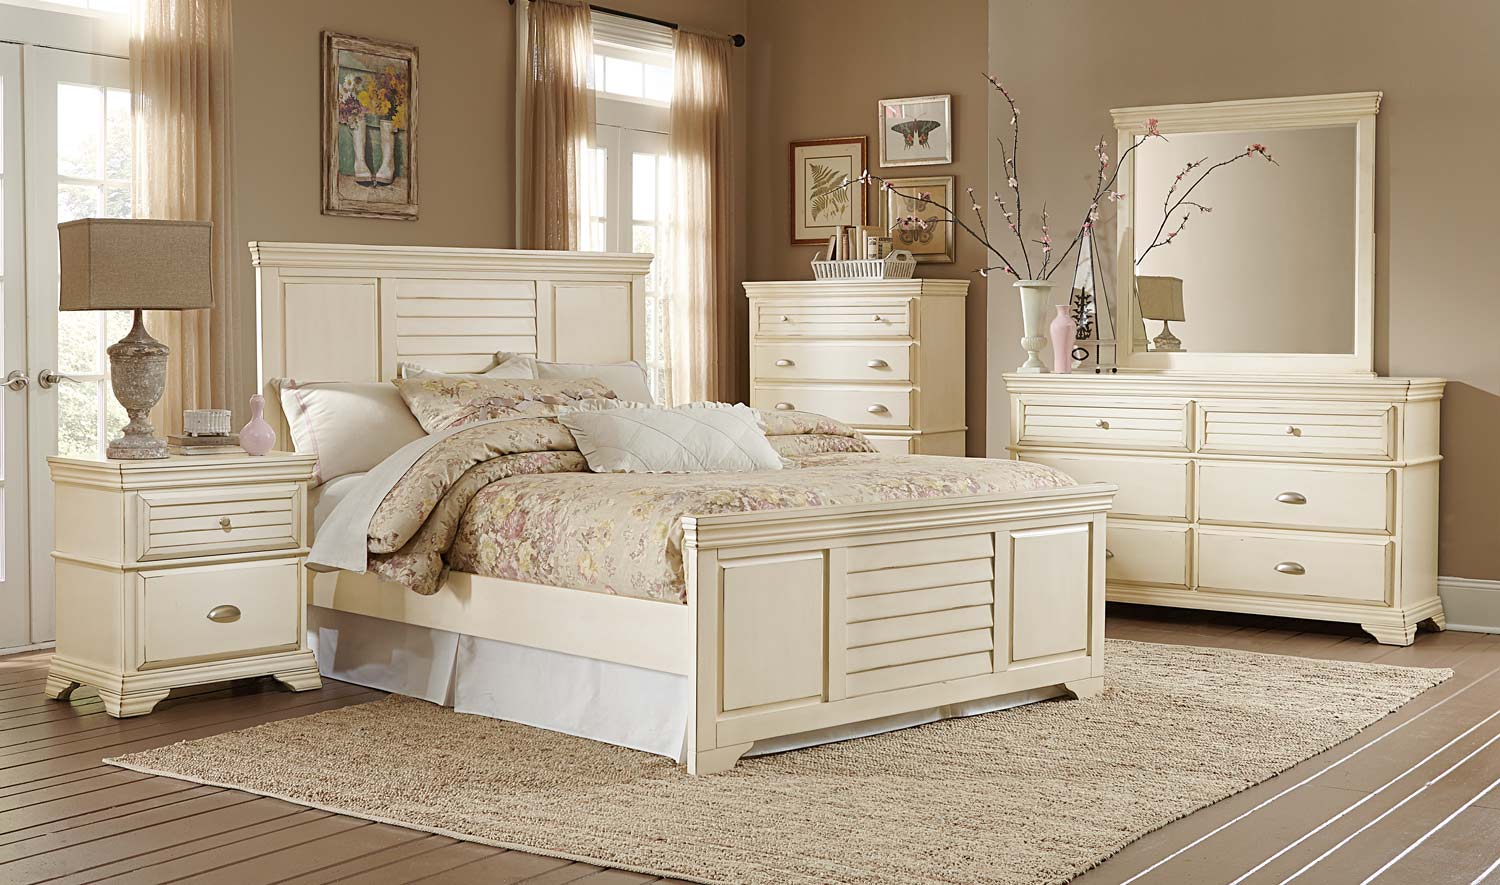 Homelegance laurinda bedroom set antique white 1846 for White bedroom collection